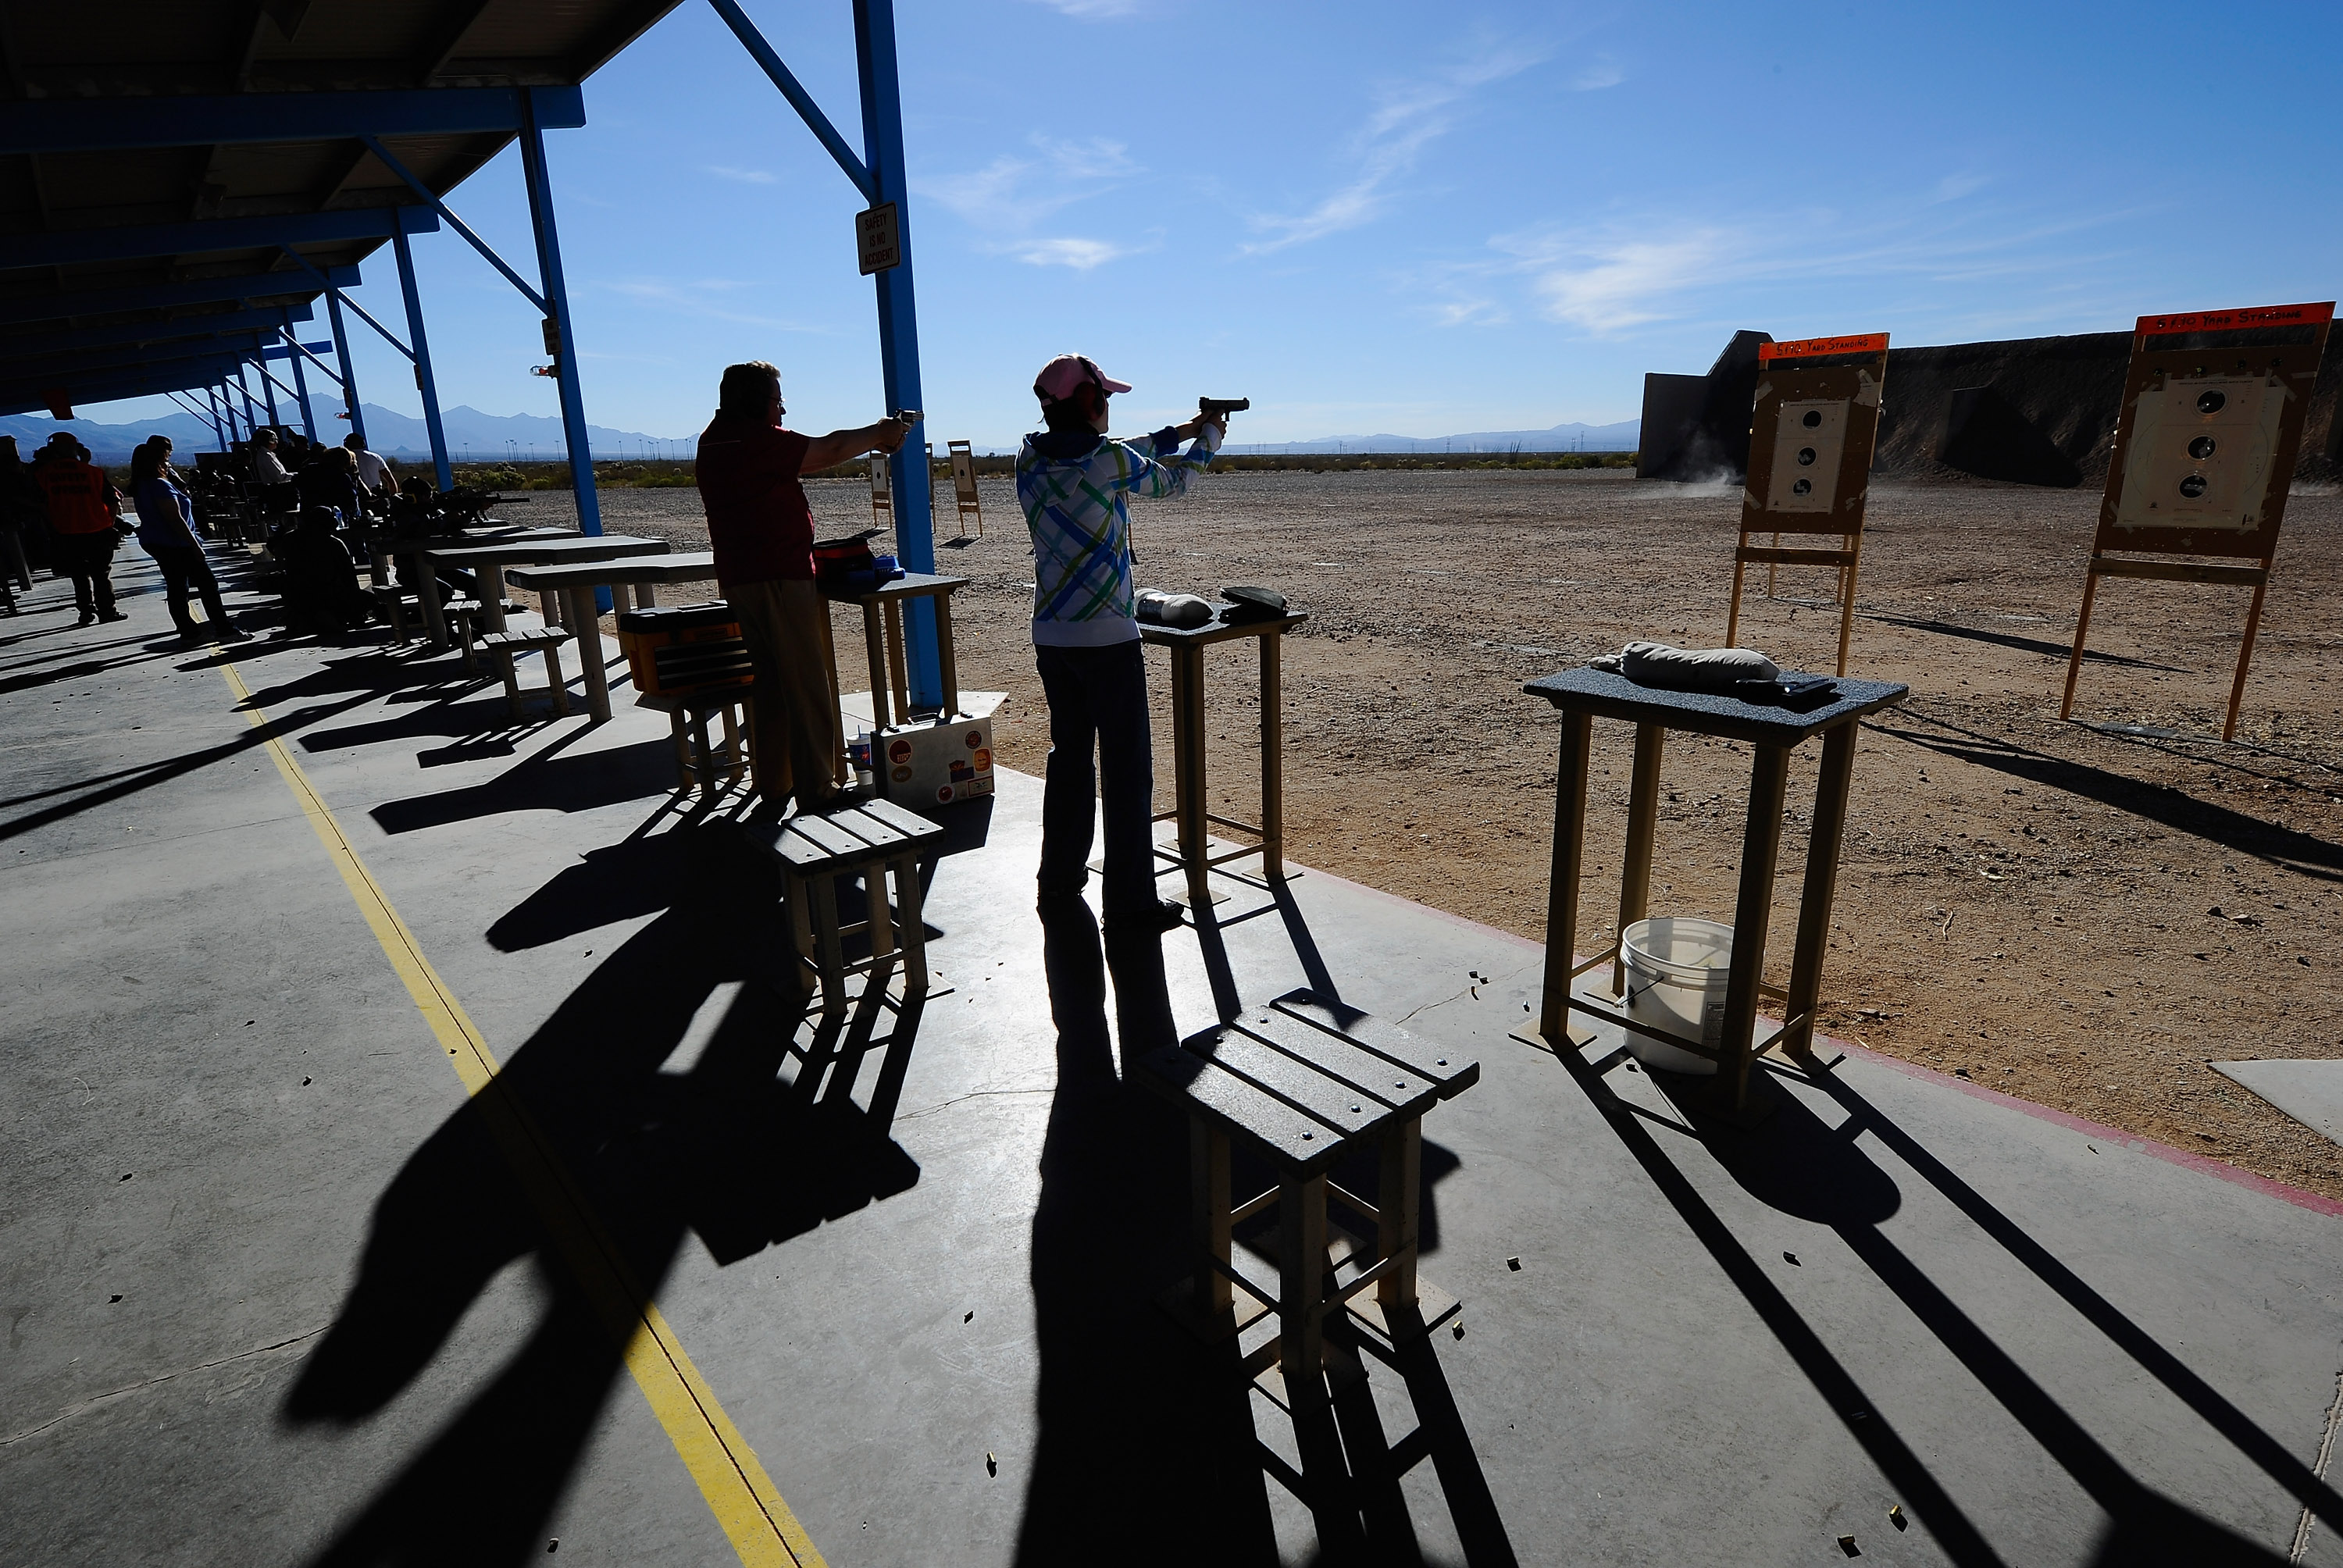 People shoot their guns at the Southwest Regional Park shooting range near the Crossroads of the West Gun Show at the Pima County Fairgrounds in Tucson, Ariz.